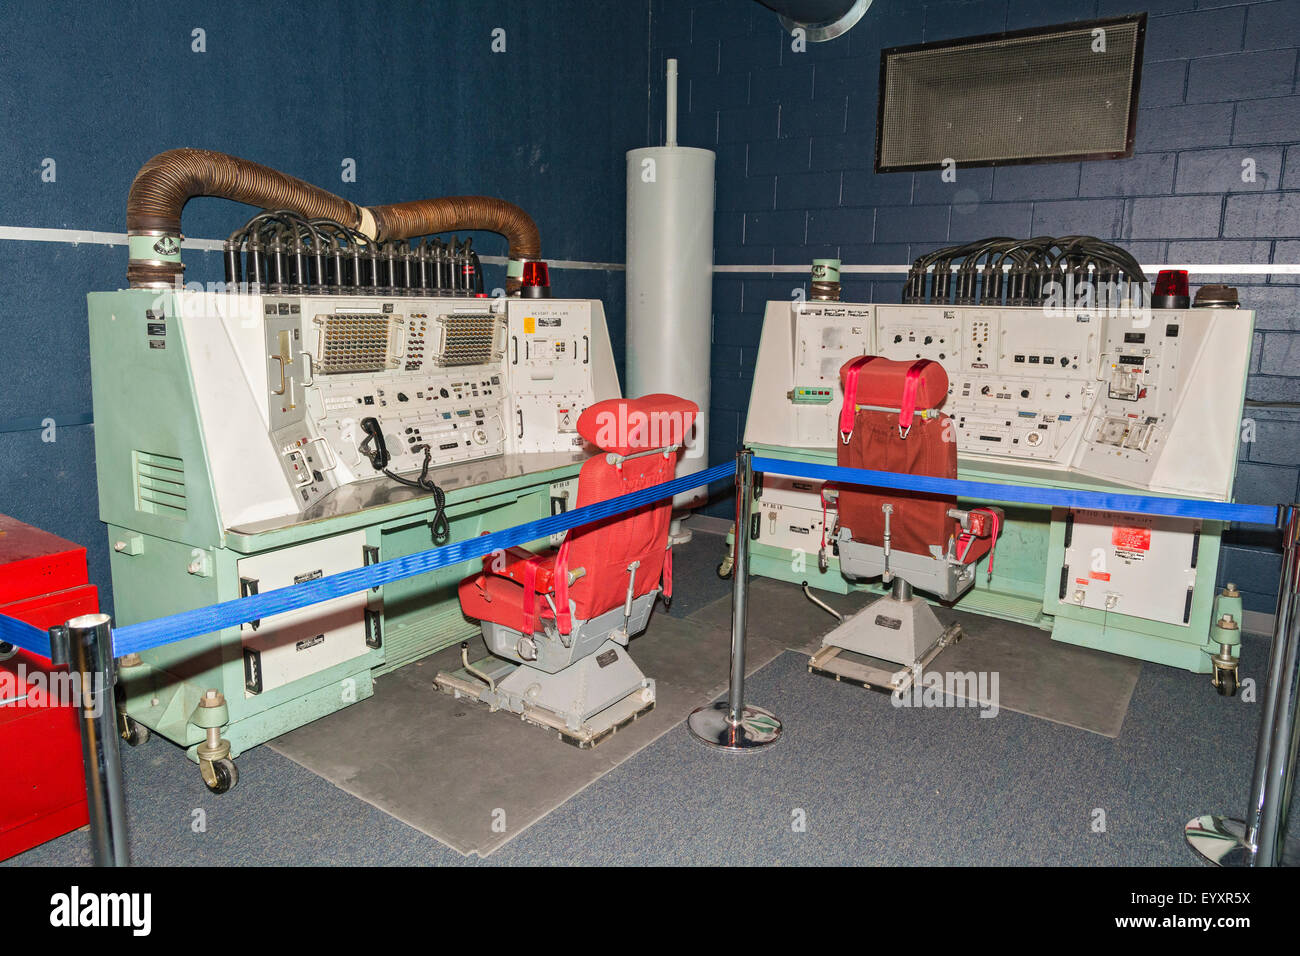 Nebraska, Ashland, Strategic Air & Space Museum, ballistic missile launch console exhibit - Stock Image